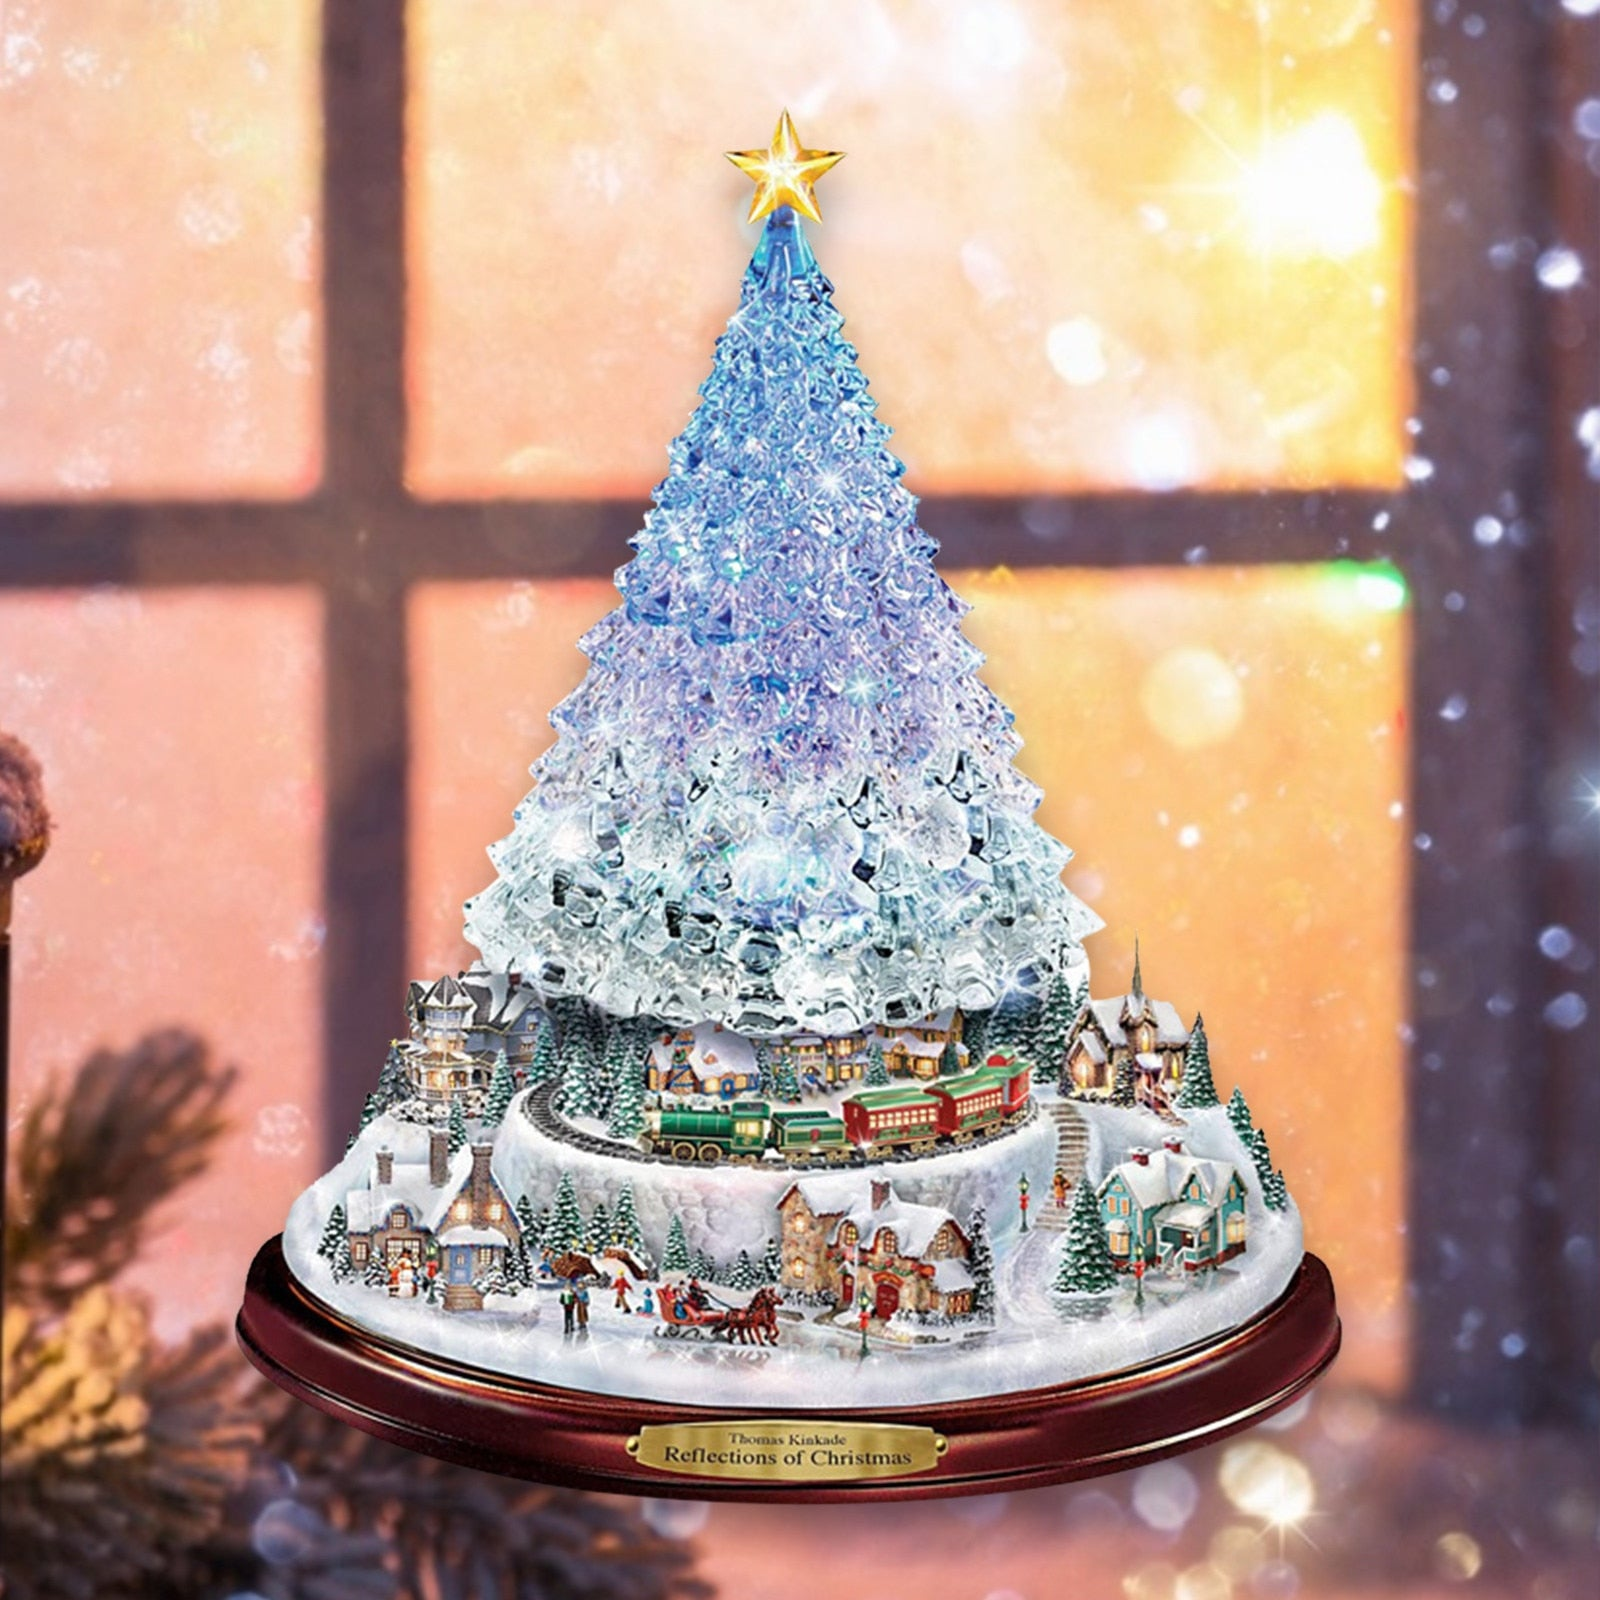 Christmas Tree Rotating Sculpture Train Decorations Paste Window Paste Stickers pegatinas paredes Christmas Decorations for Home